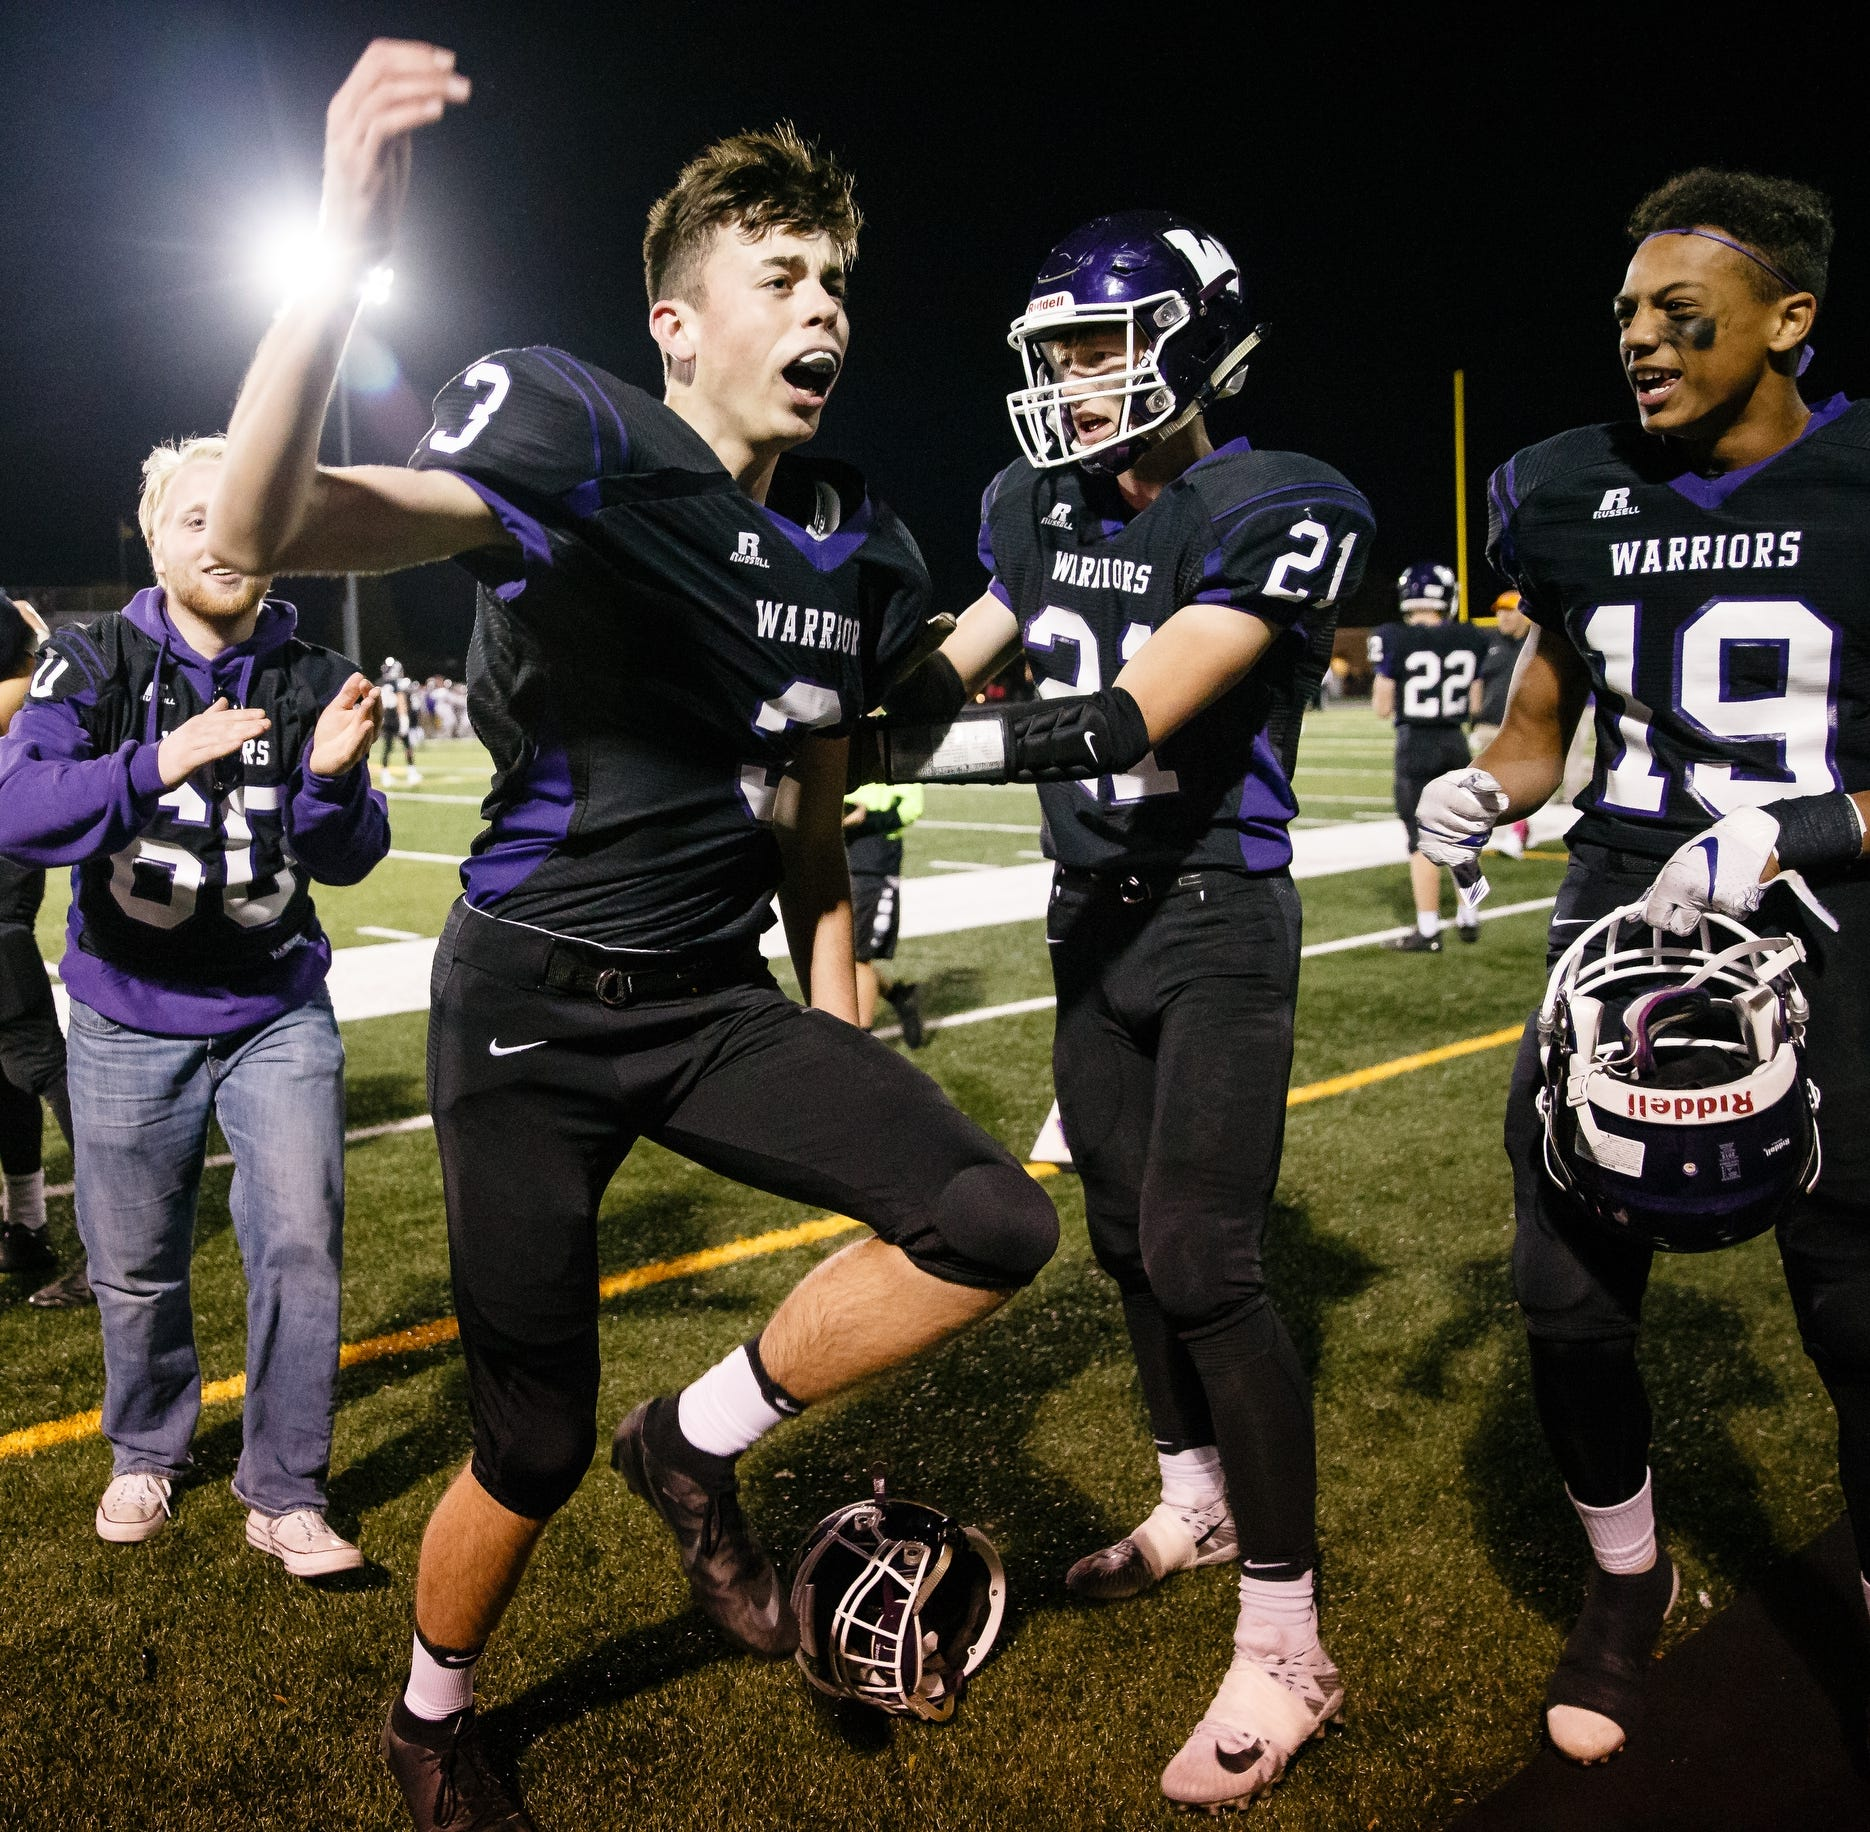 Waukee's Cade Tjaden, center, celebrates after kicking the game winning field goal with 22.4 seconds left to put Waukee up 31-30 over Johnston during their football game at Waukee Stadium on Friday, Oct. 19, 2018, in Waukee.